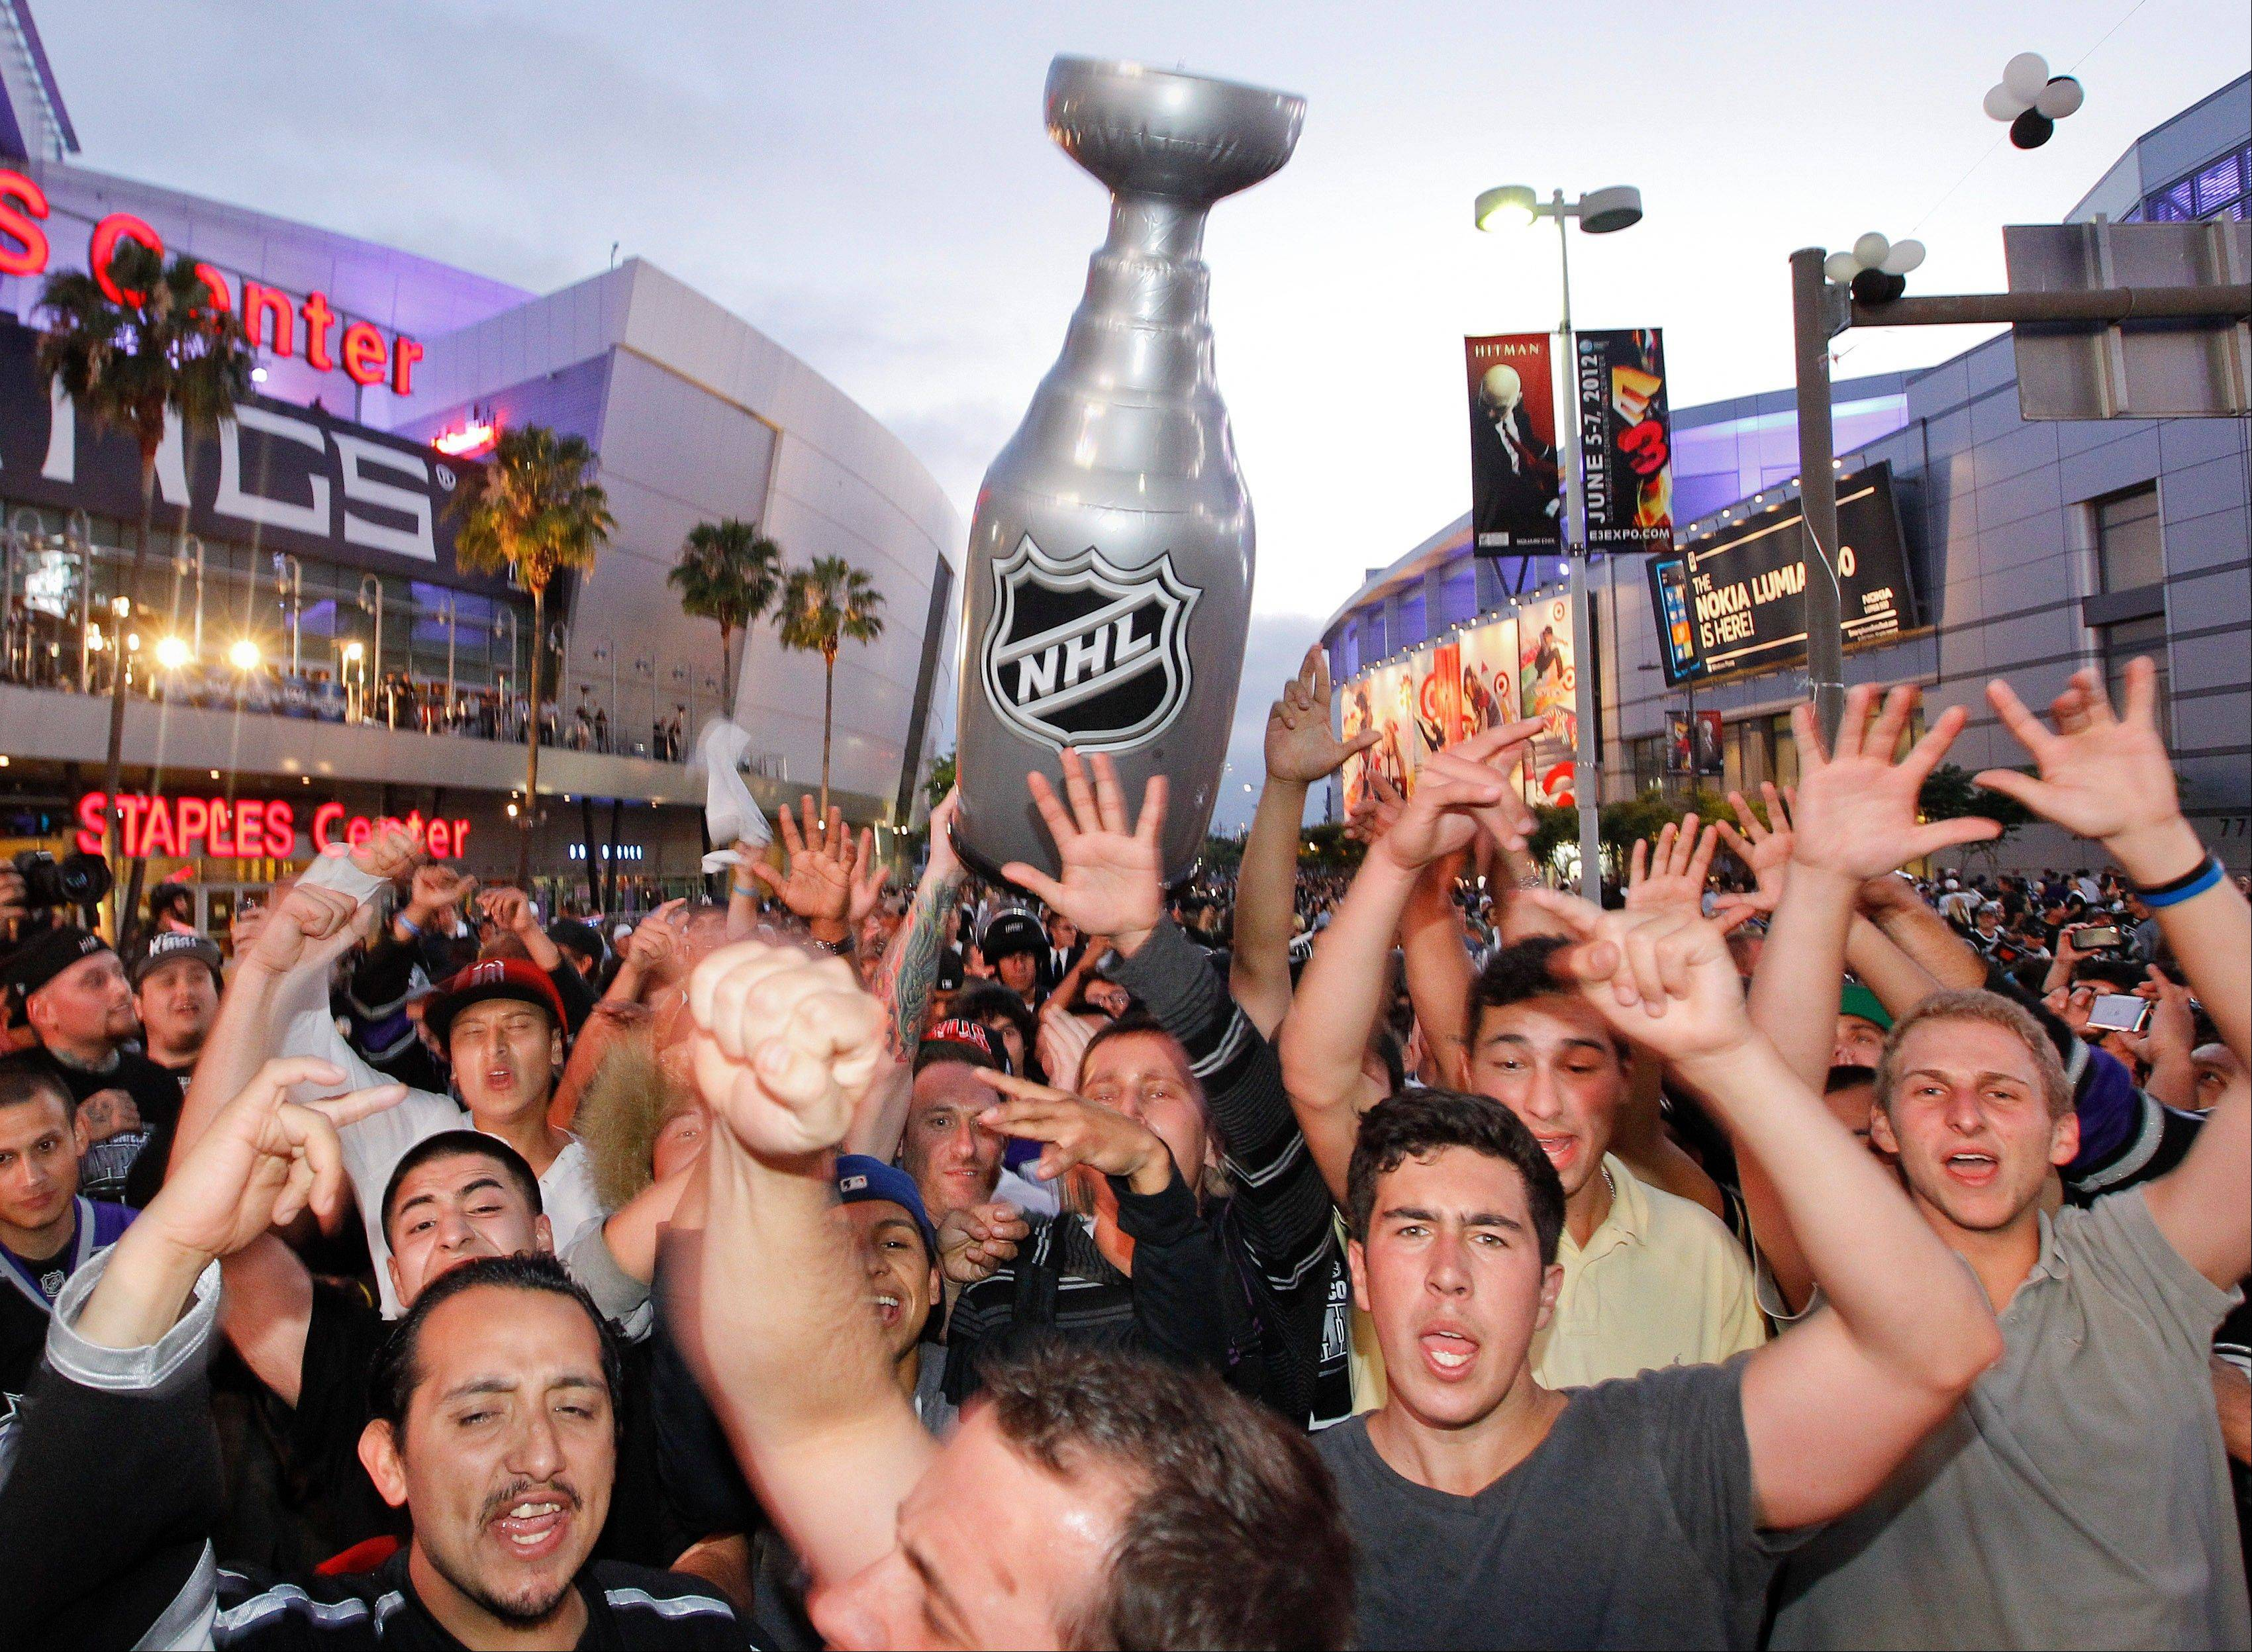 Los Angeles Kings fans celebrate their Stanley Cup victory over the New Jersey Devils outside the Staples Center after Game 6.